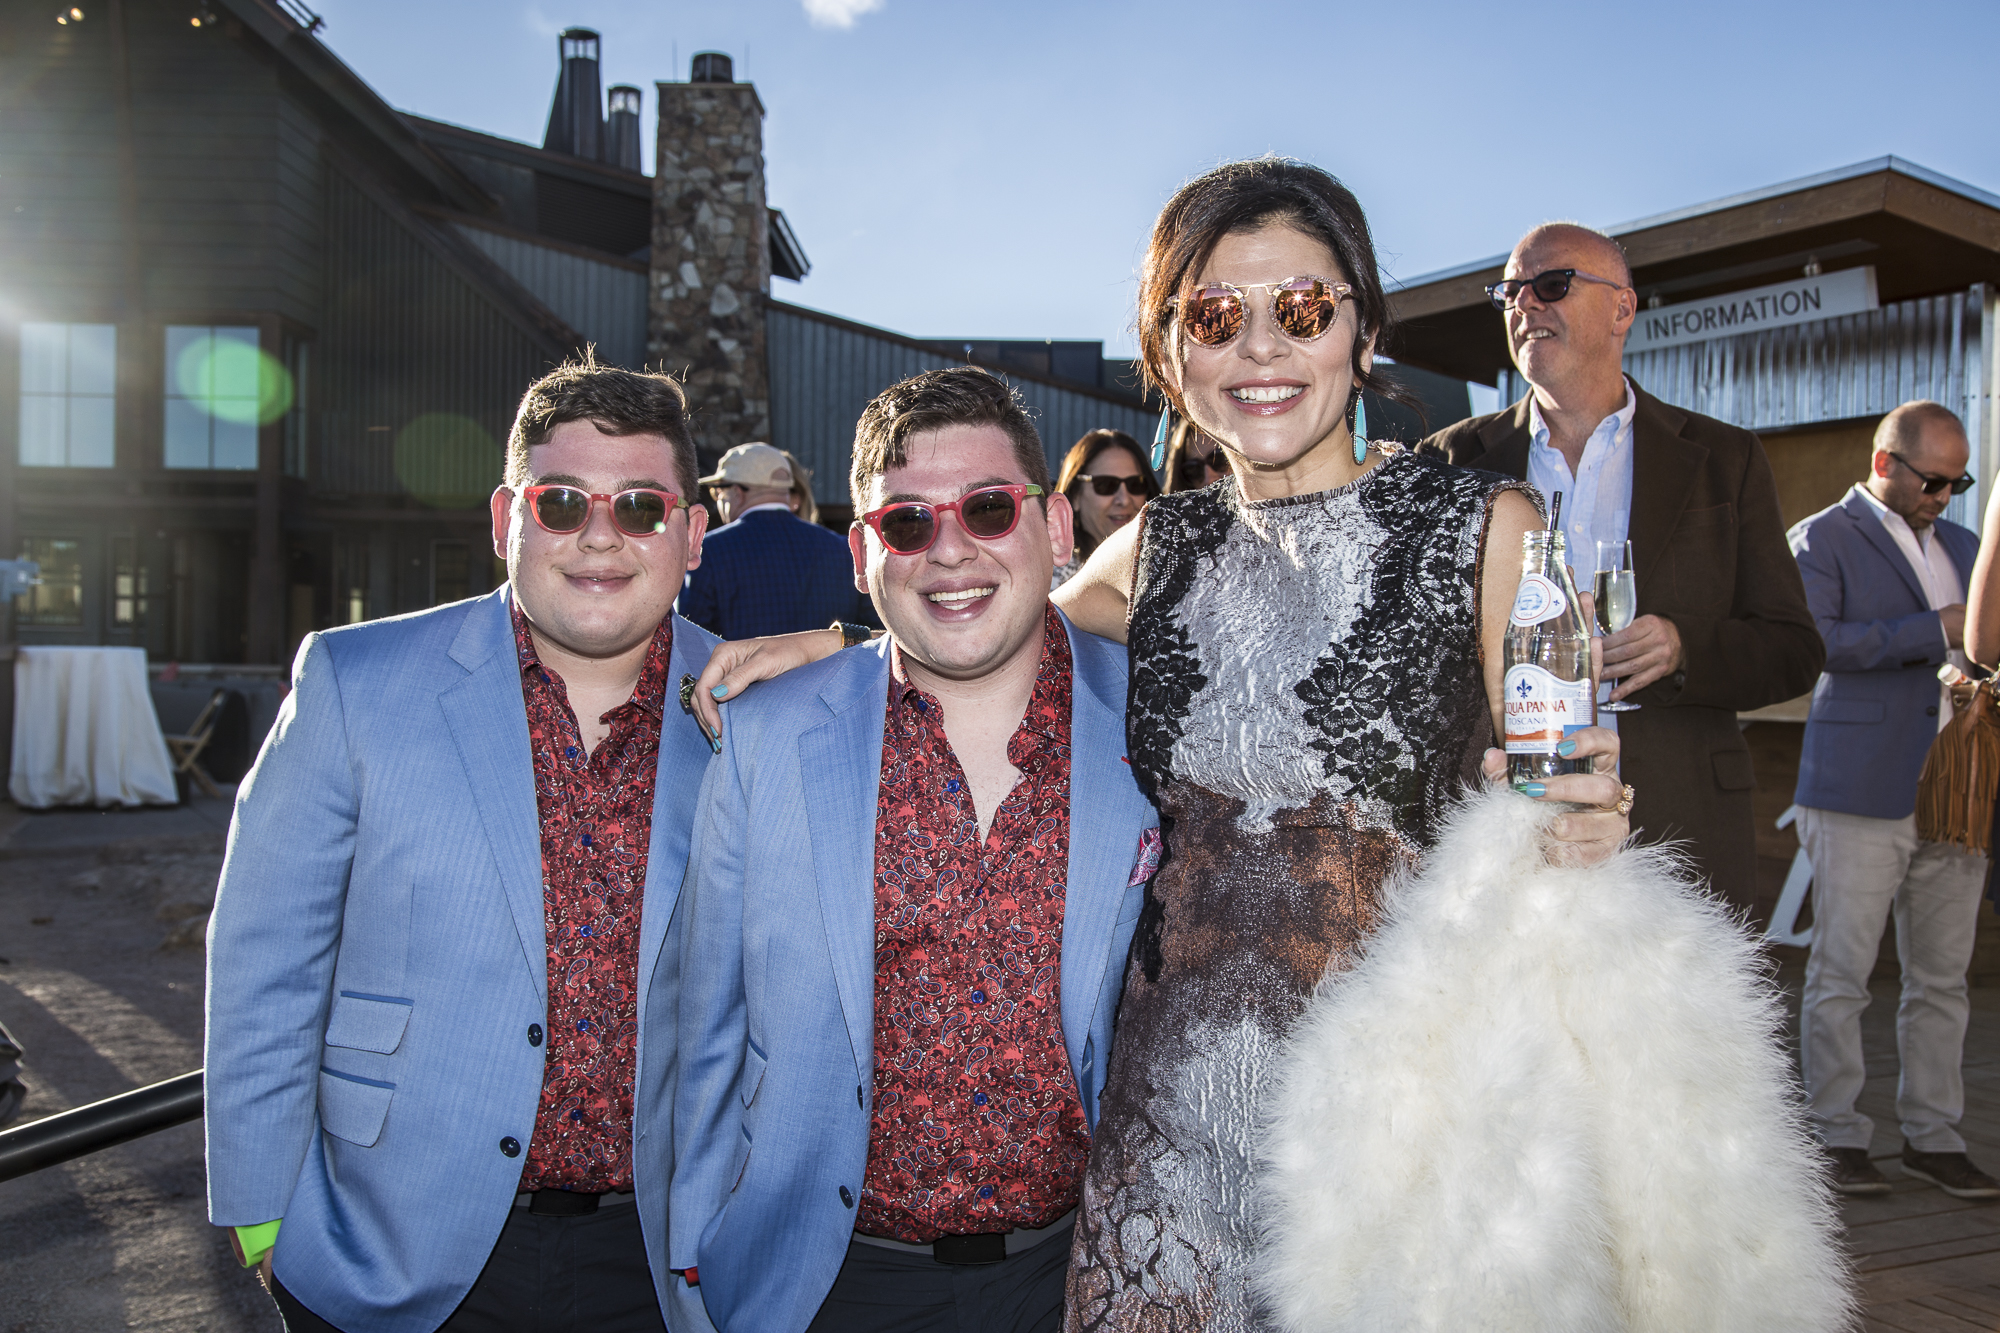 Taste of the Classic: Best Social Moments at the Food & Wine Classic in Aspen